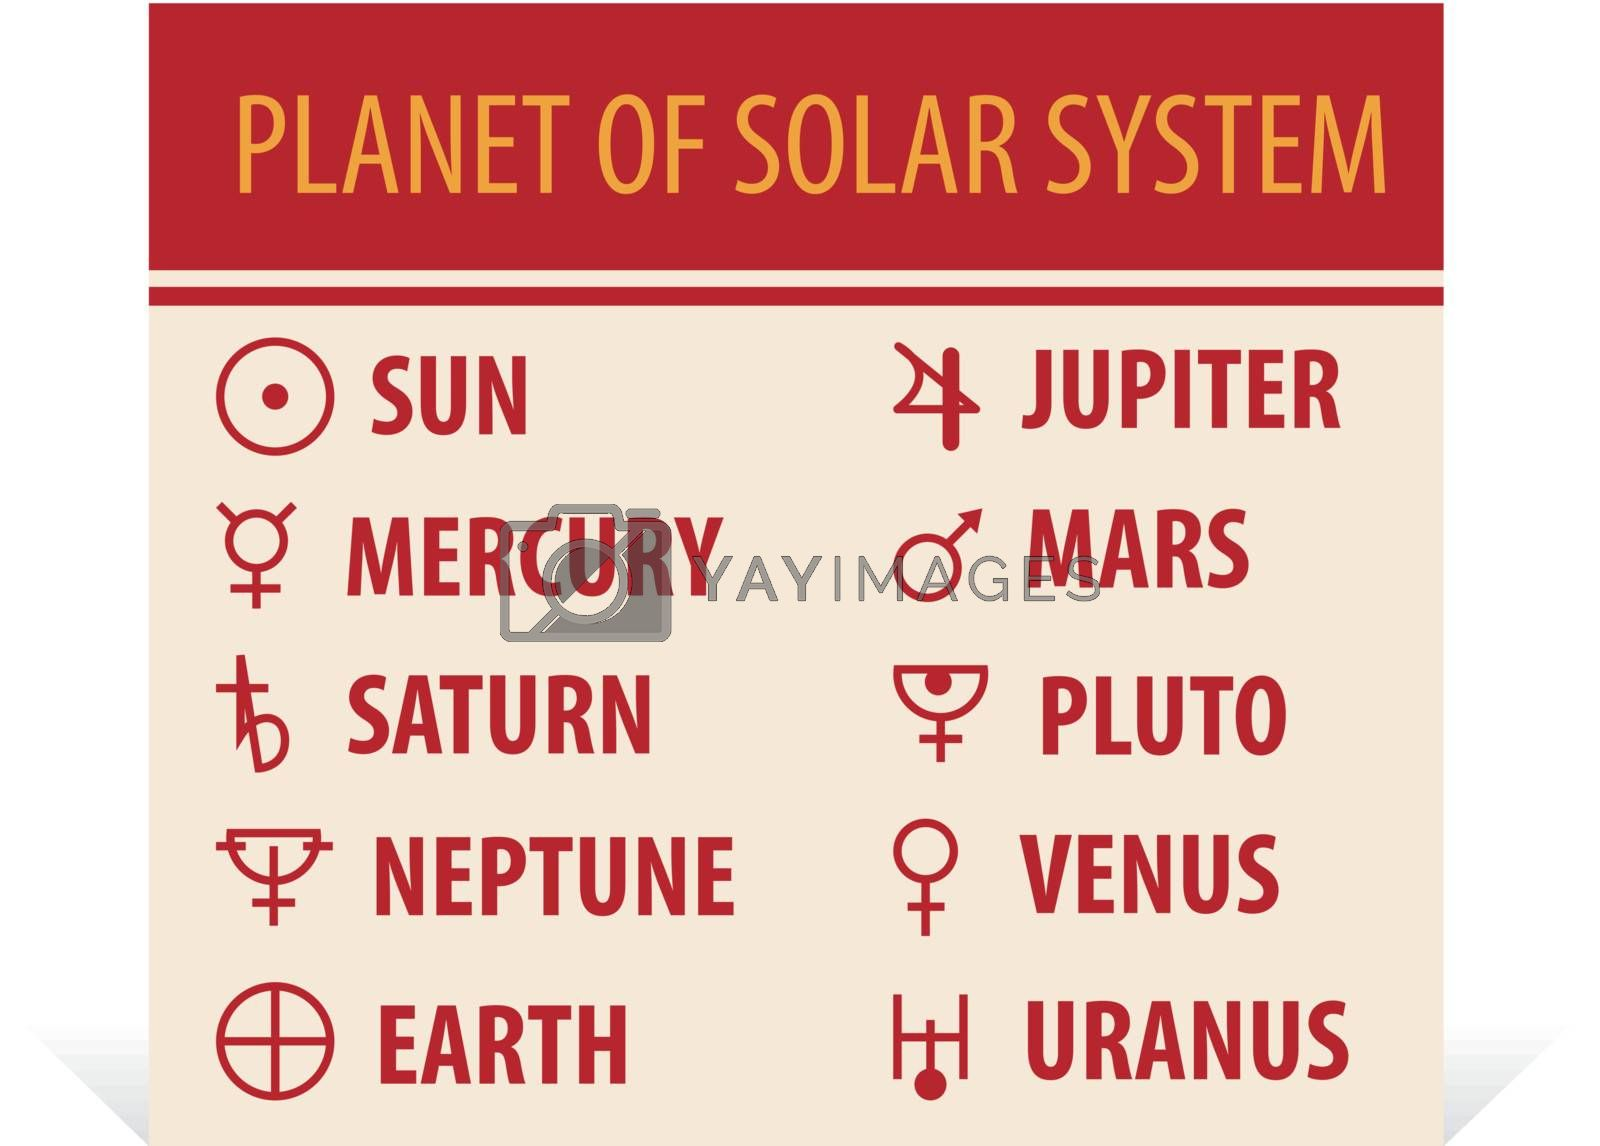 llustration of different astrological symbols - signs of planets